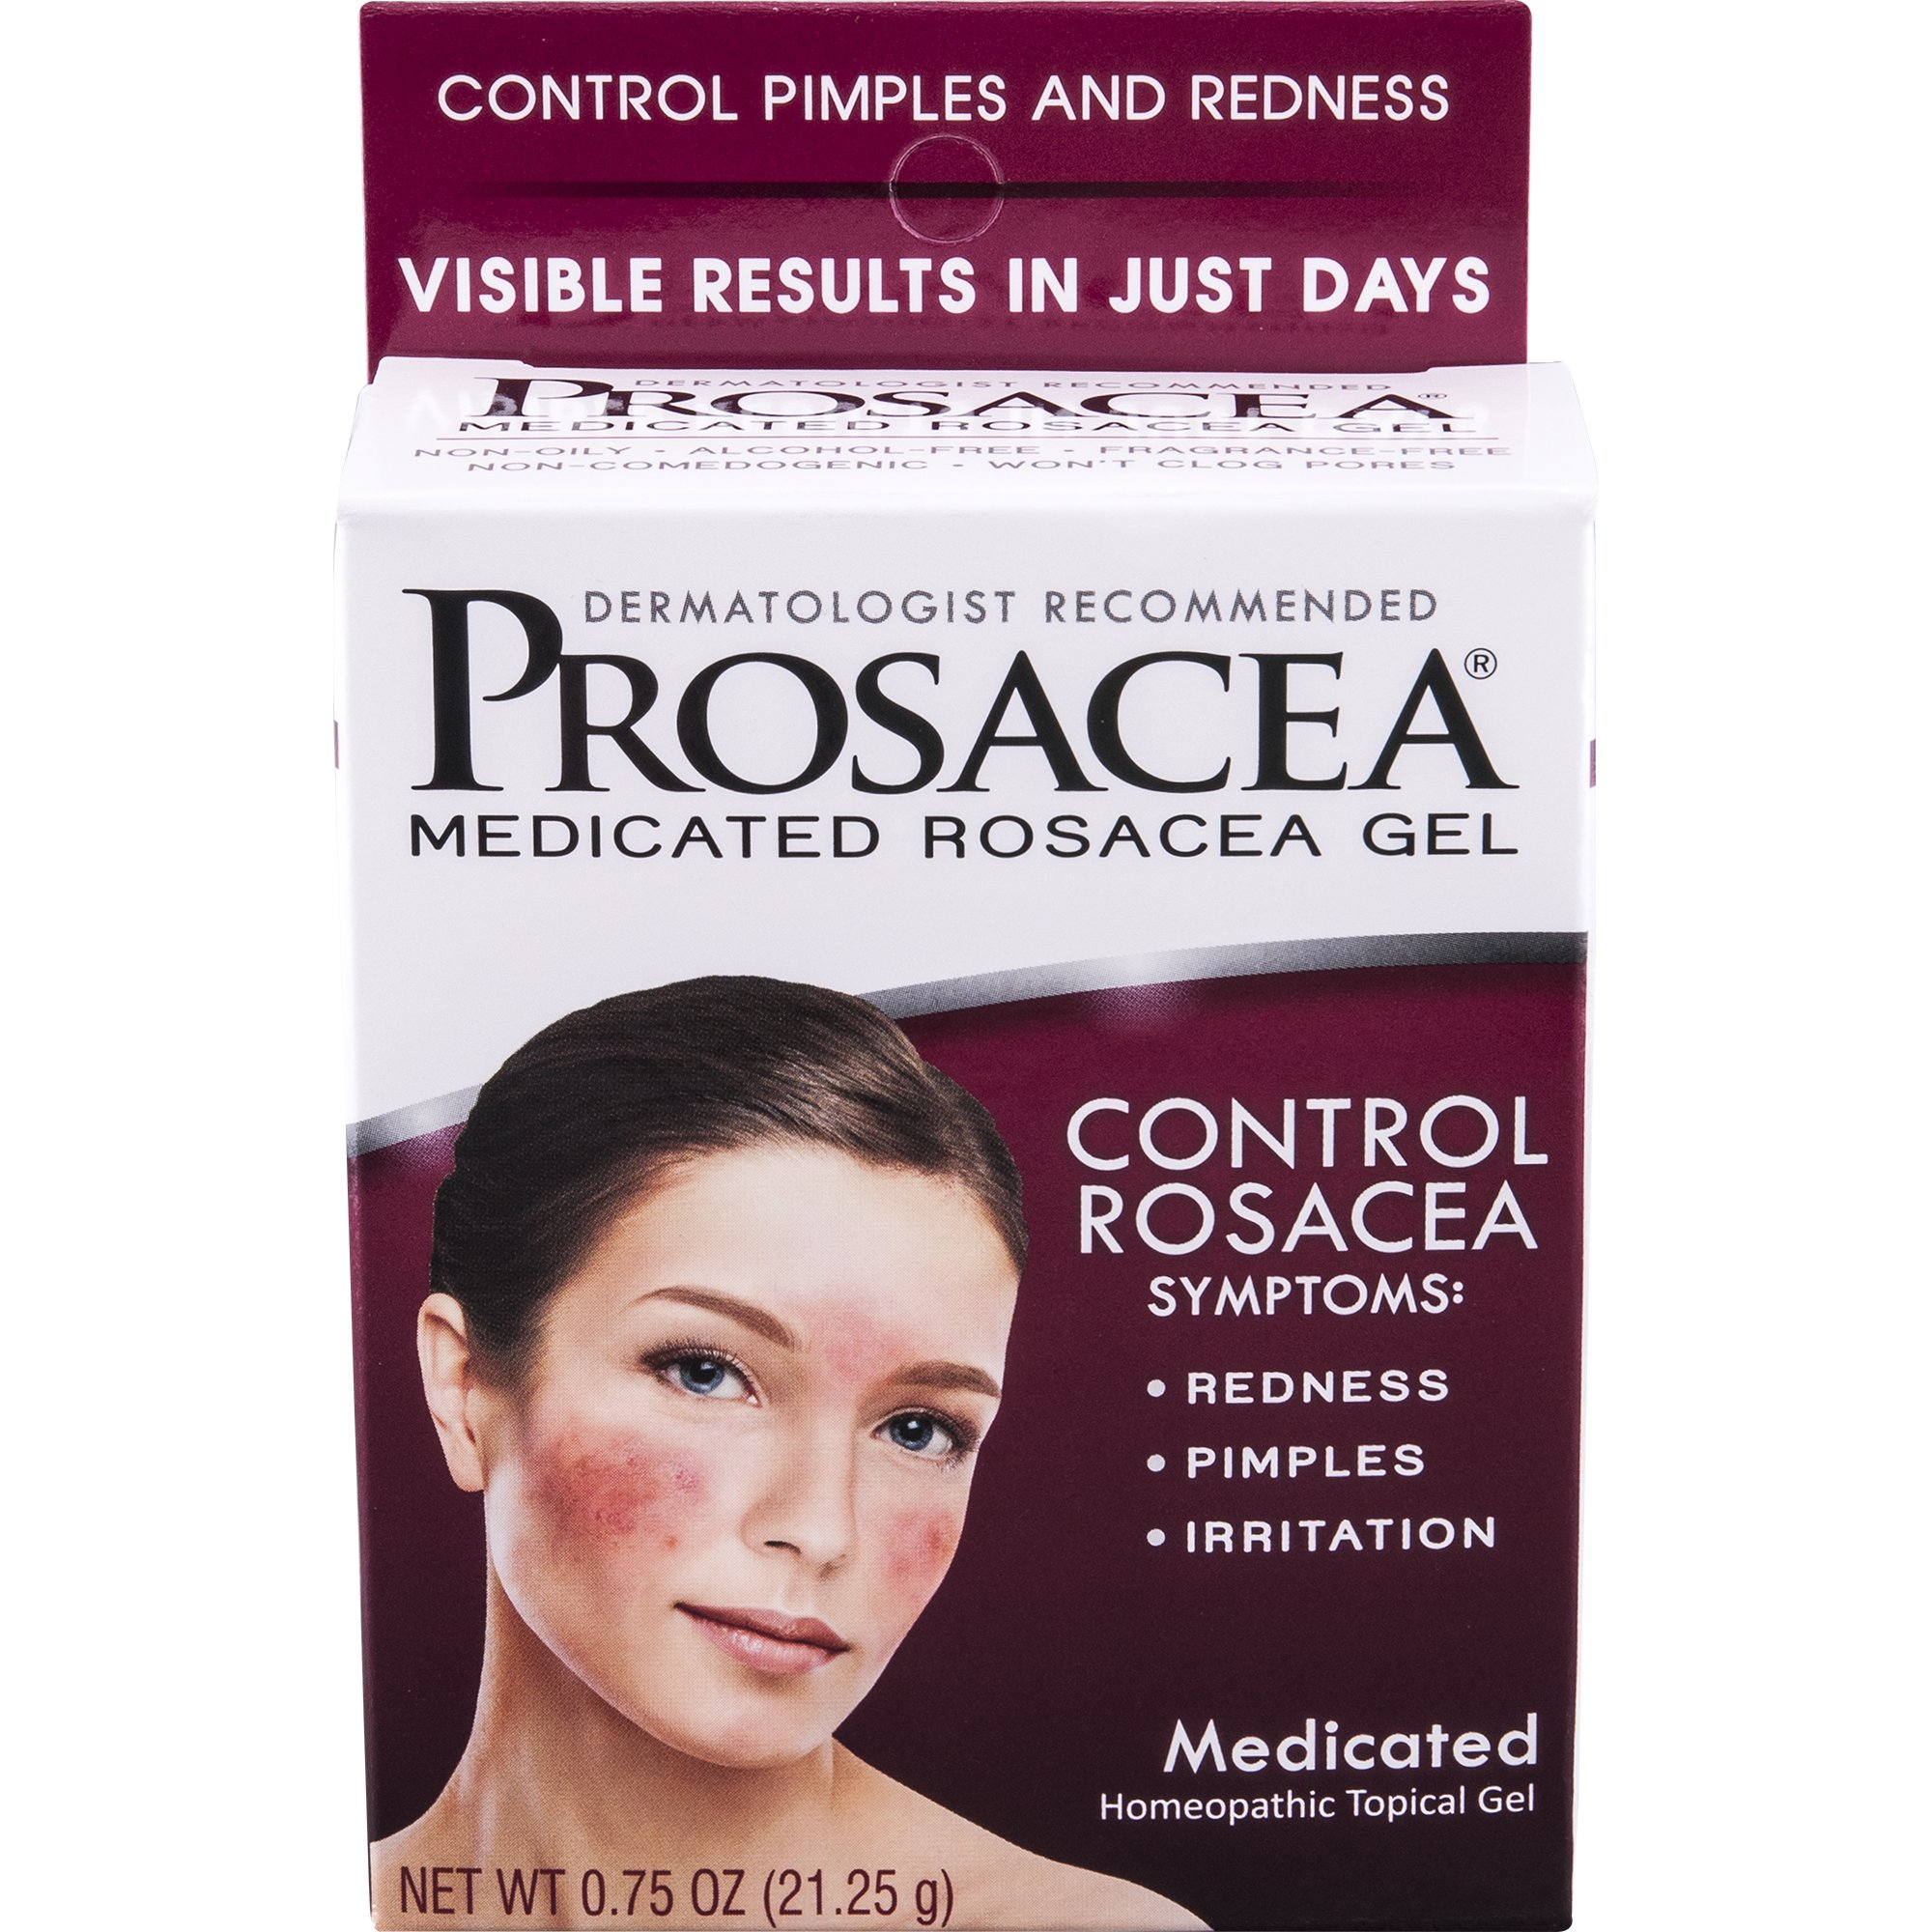 Prosacea—Medicated Rosacea Gel—0.75 Oz Tube—Multi-Symptom Relief of Bumps, Redness & Dryness from Rosacea—Calms and Soothes Skin by Psoriasin